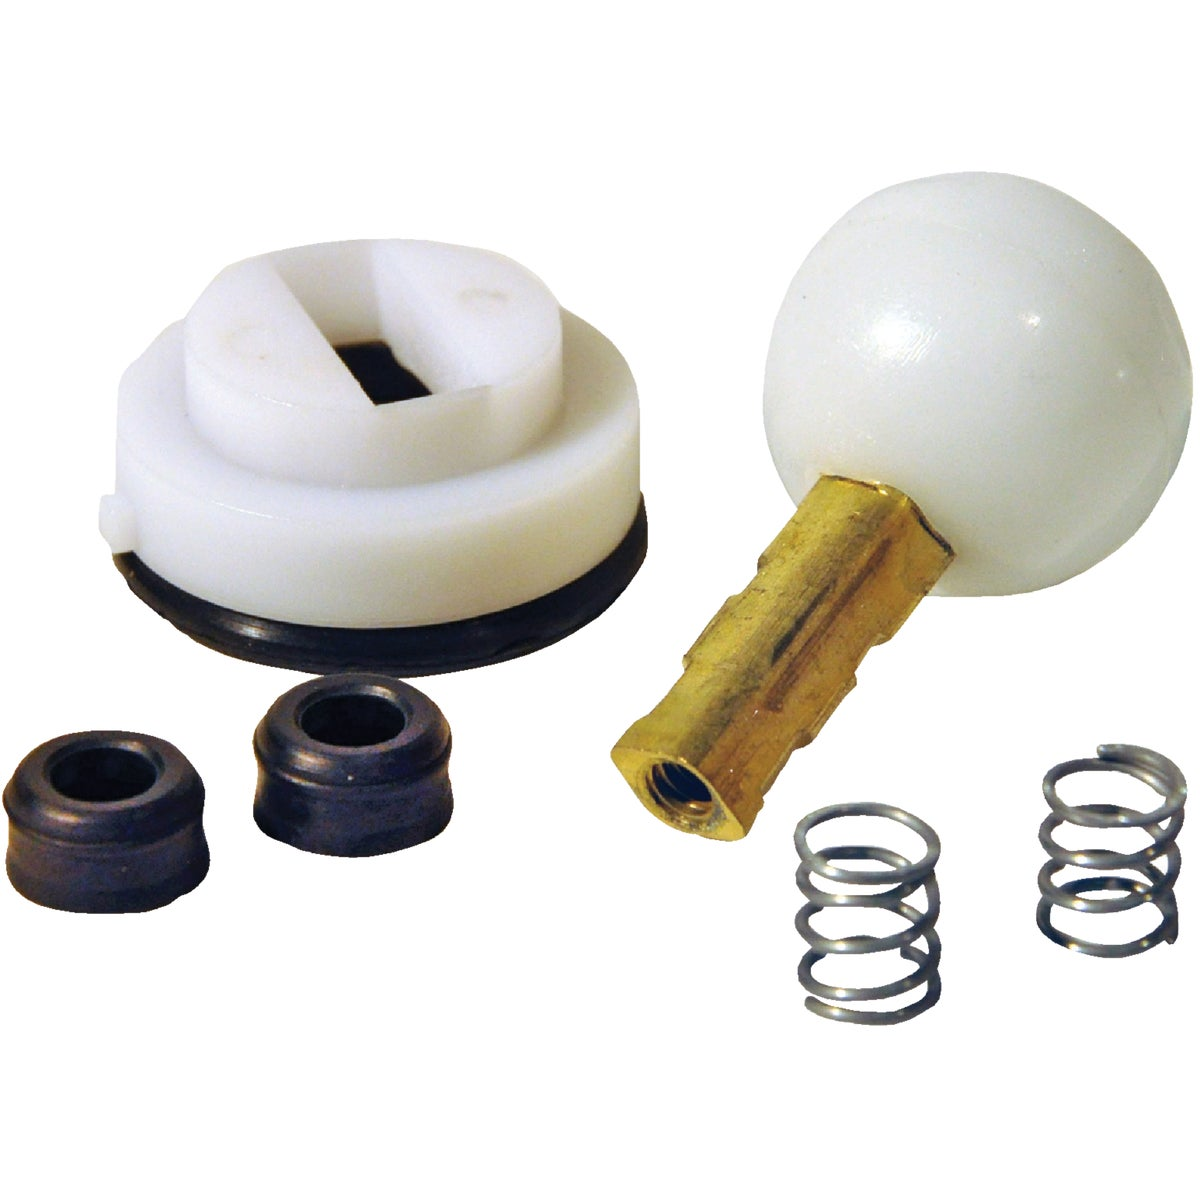 PEERLESS REPAIR KIT - 80743 by Danco Perfect Match